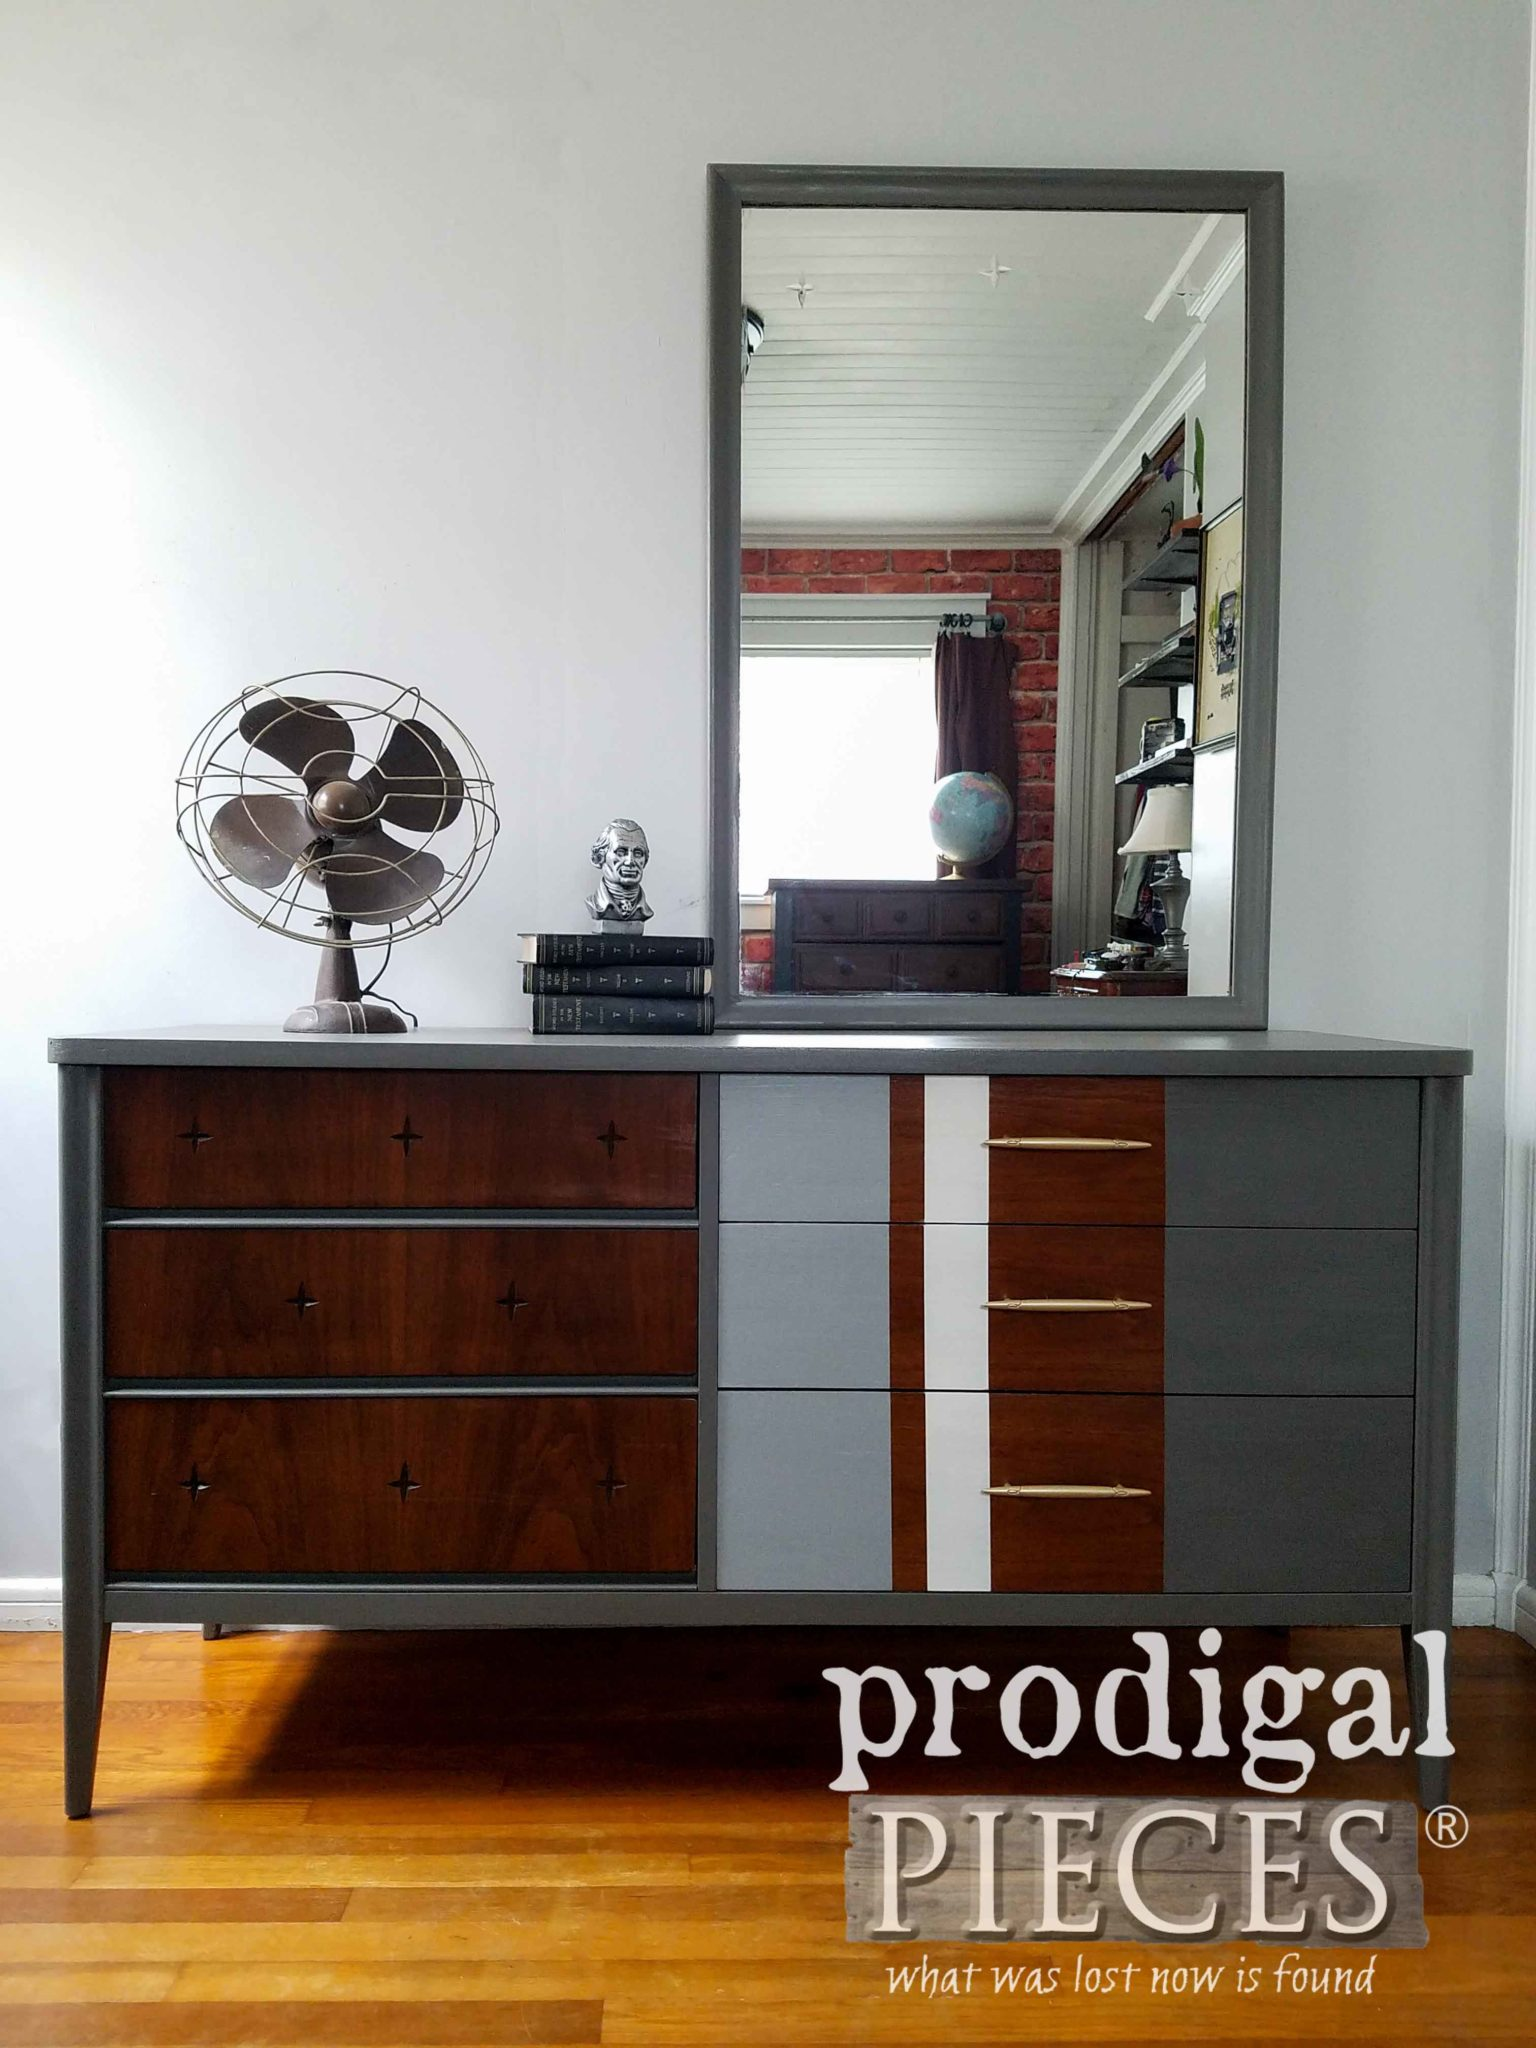 Vintage Broyhill Saga Dresser Updated with Dixie Belle Paint for a Modern Chic Look by Prodigal Pieces | prodigalpieces.com